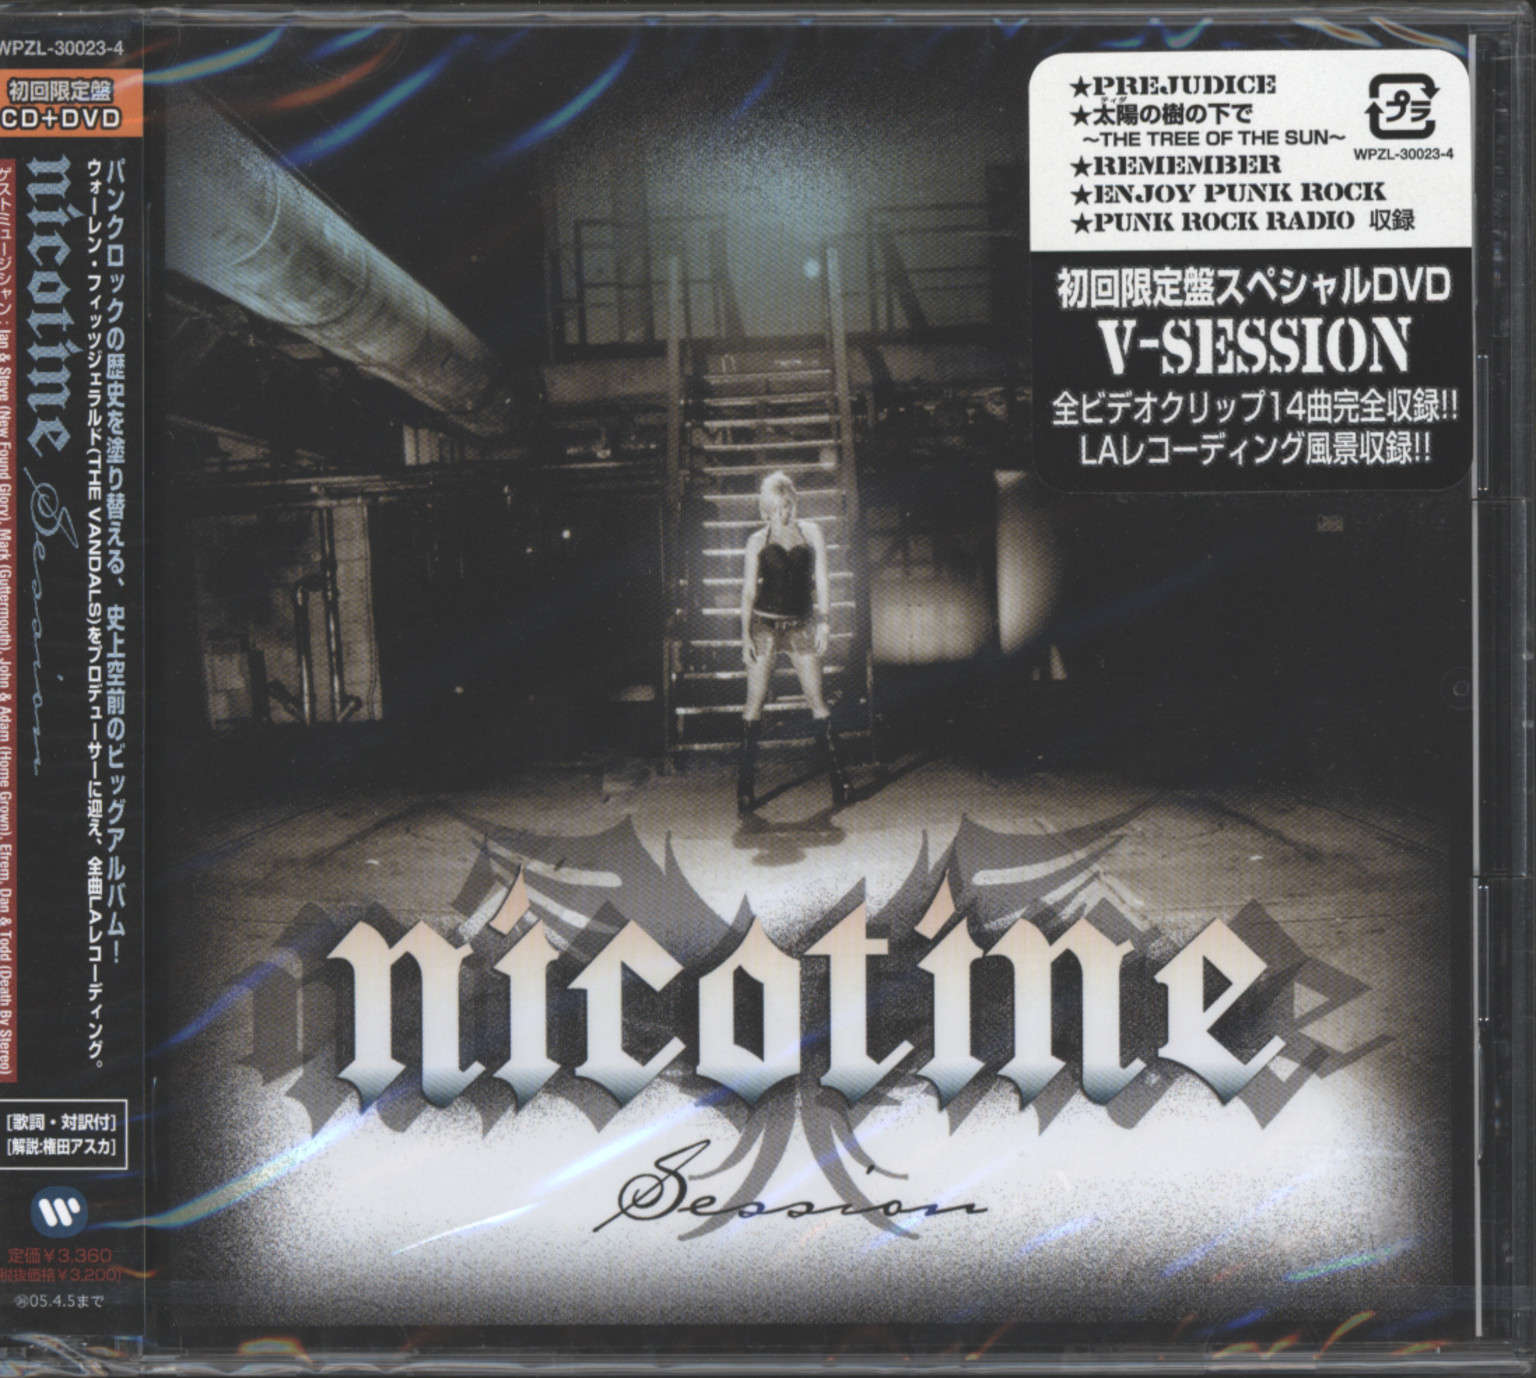 Nicotine: Session, CD